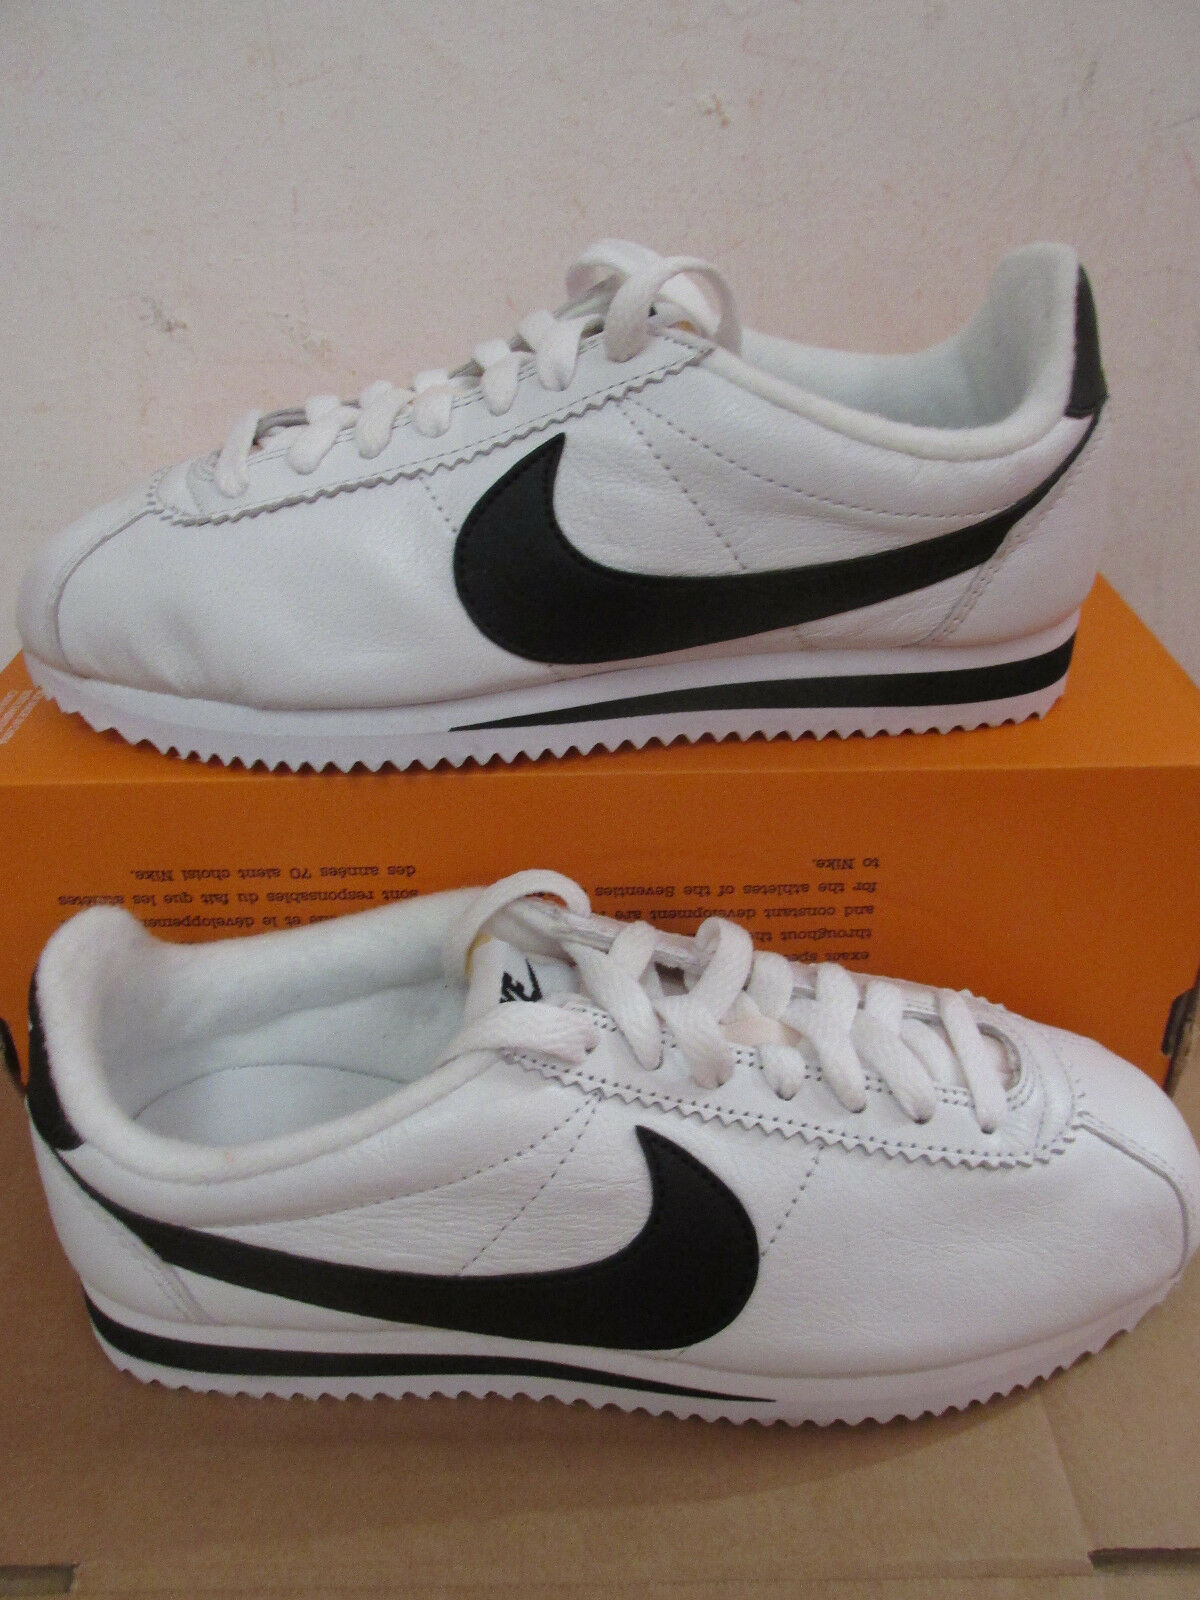 nike classic cortez PREM mens trainers 807480 101 sneakers shoes CLEARANCE